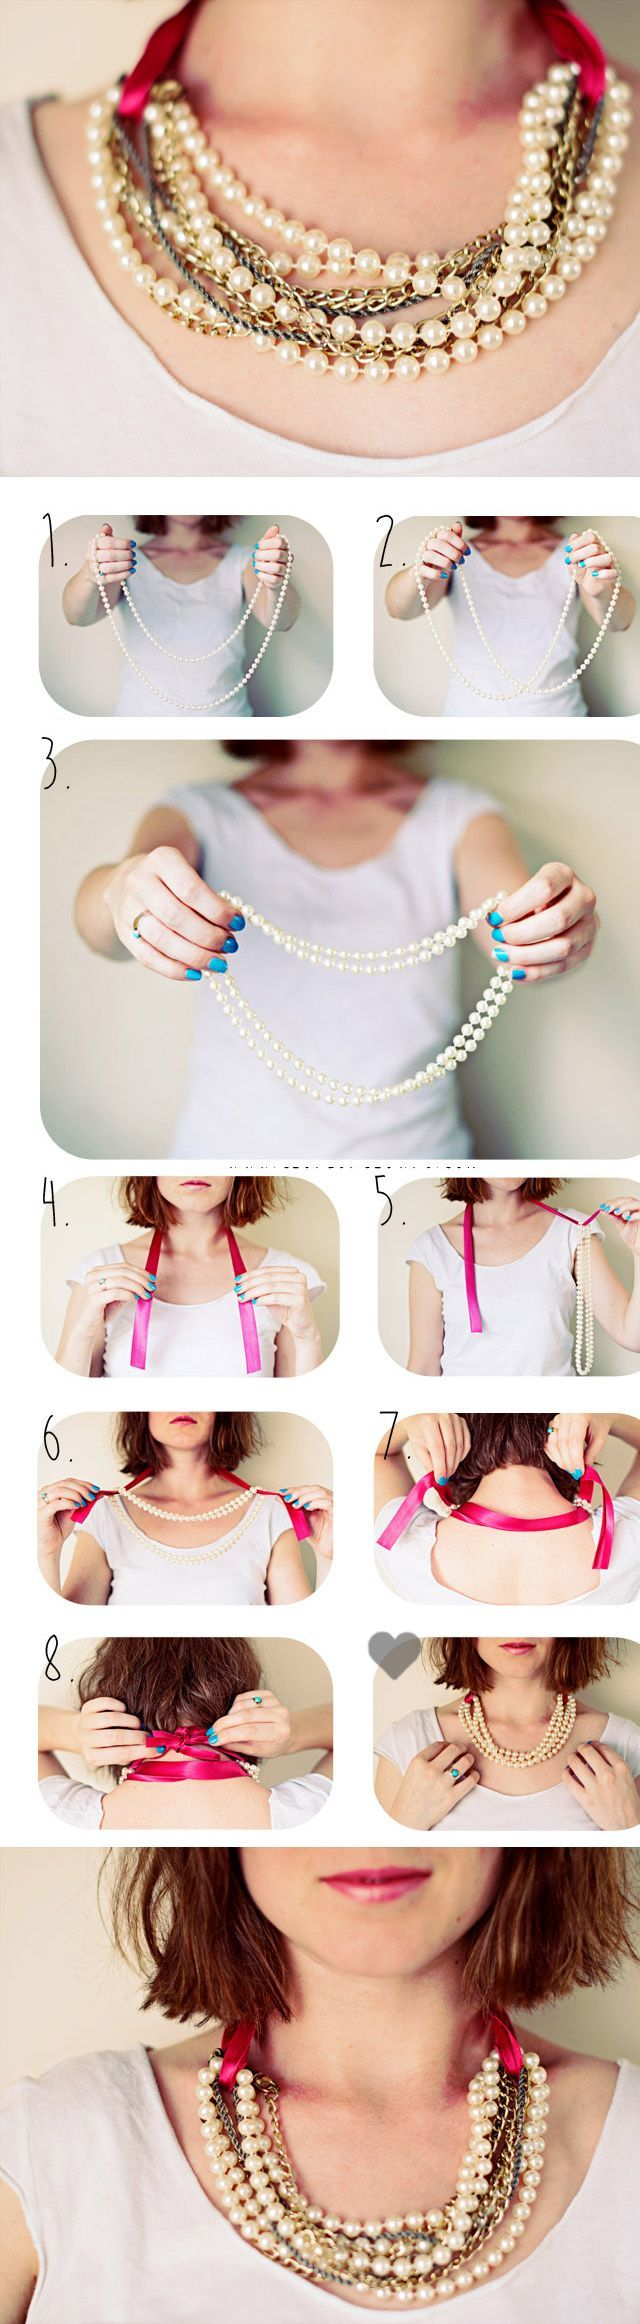 DIY Pearl Necklace In Seconds